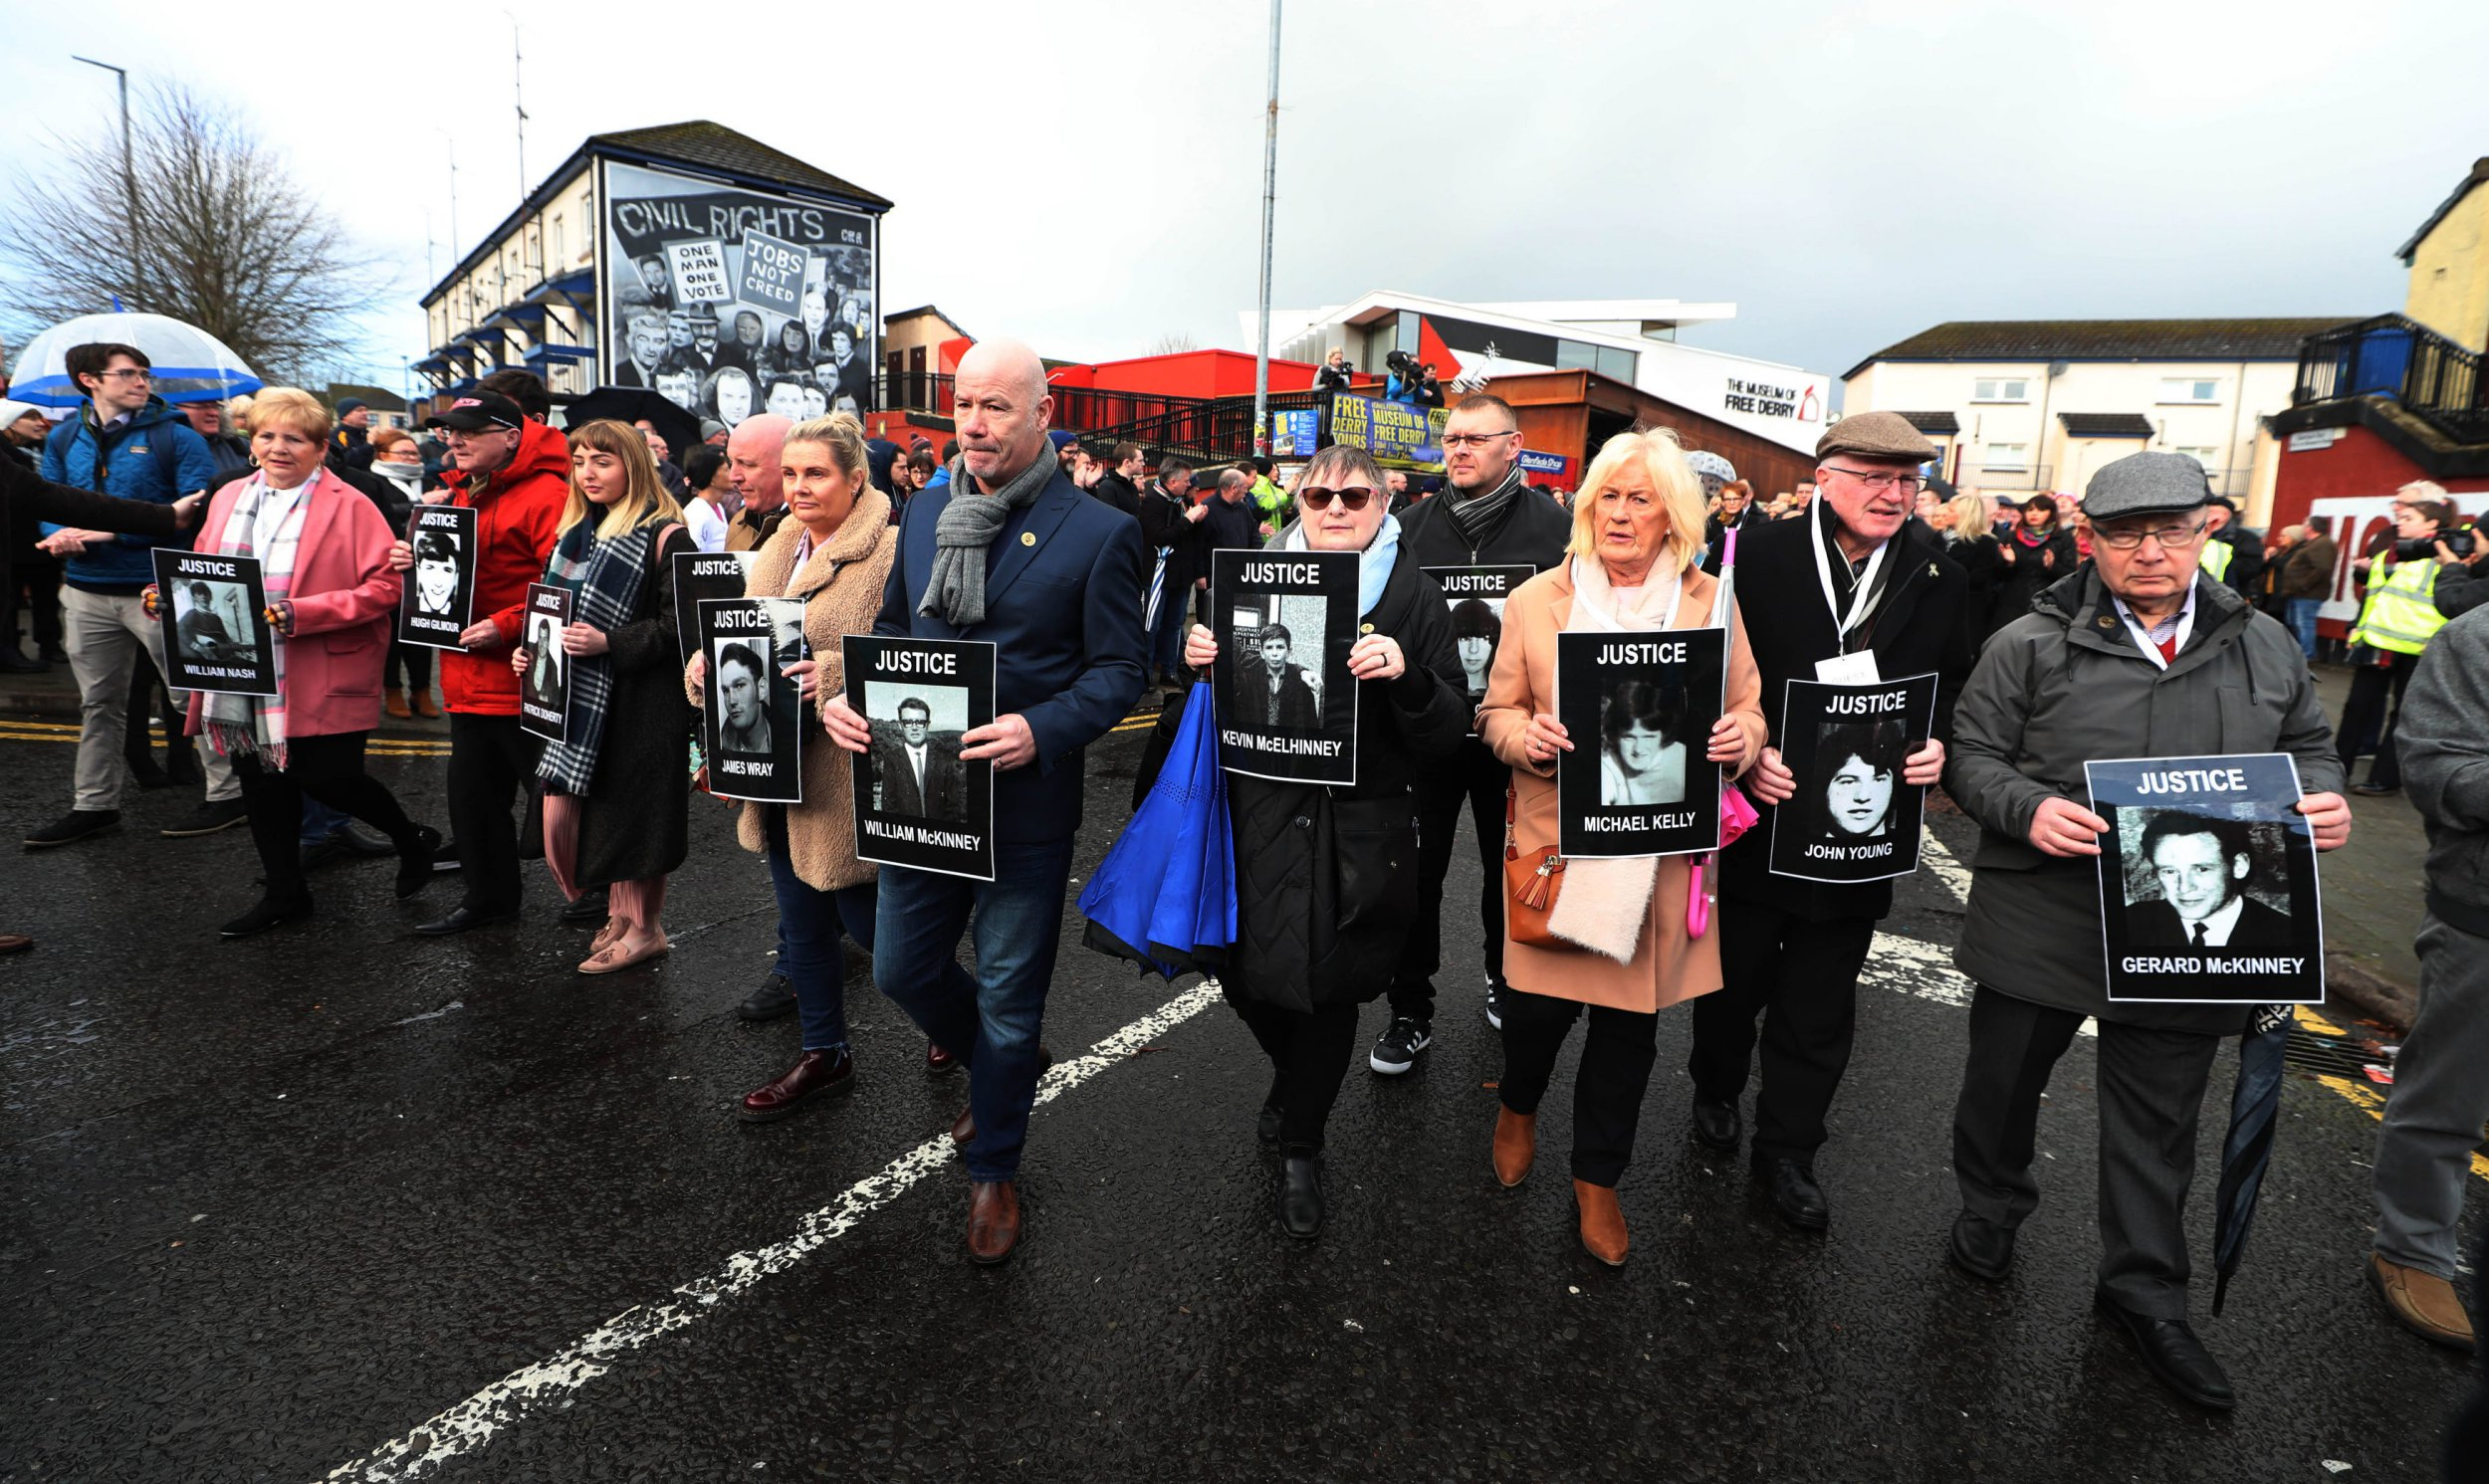 Families of those who died march through the Bogside in Londonderry, Northern Ireland, ahead of an announcement over the prosecution of 17 former British soldiers and two former members of the Official IRA in connection with the events of Bloody Sunday in the city in January 1972. PRESS ASSOCIATION Photo. Picture date: Thursday March 14, 2019. See PA story ULSTER Sunday. Photo credit should read: Niall Carson/PA Wire